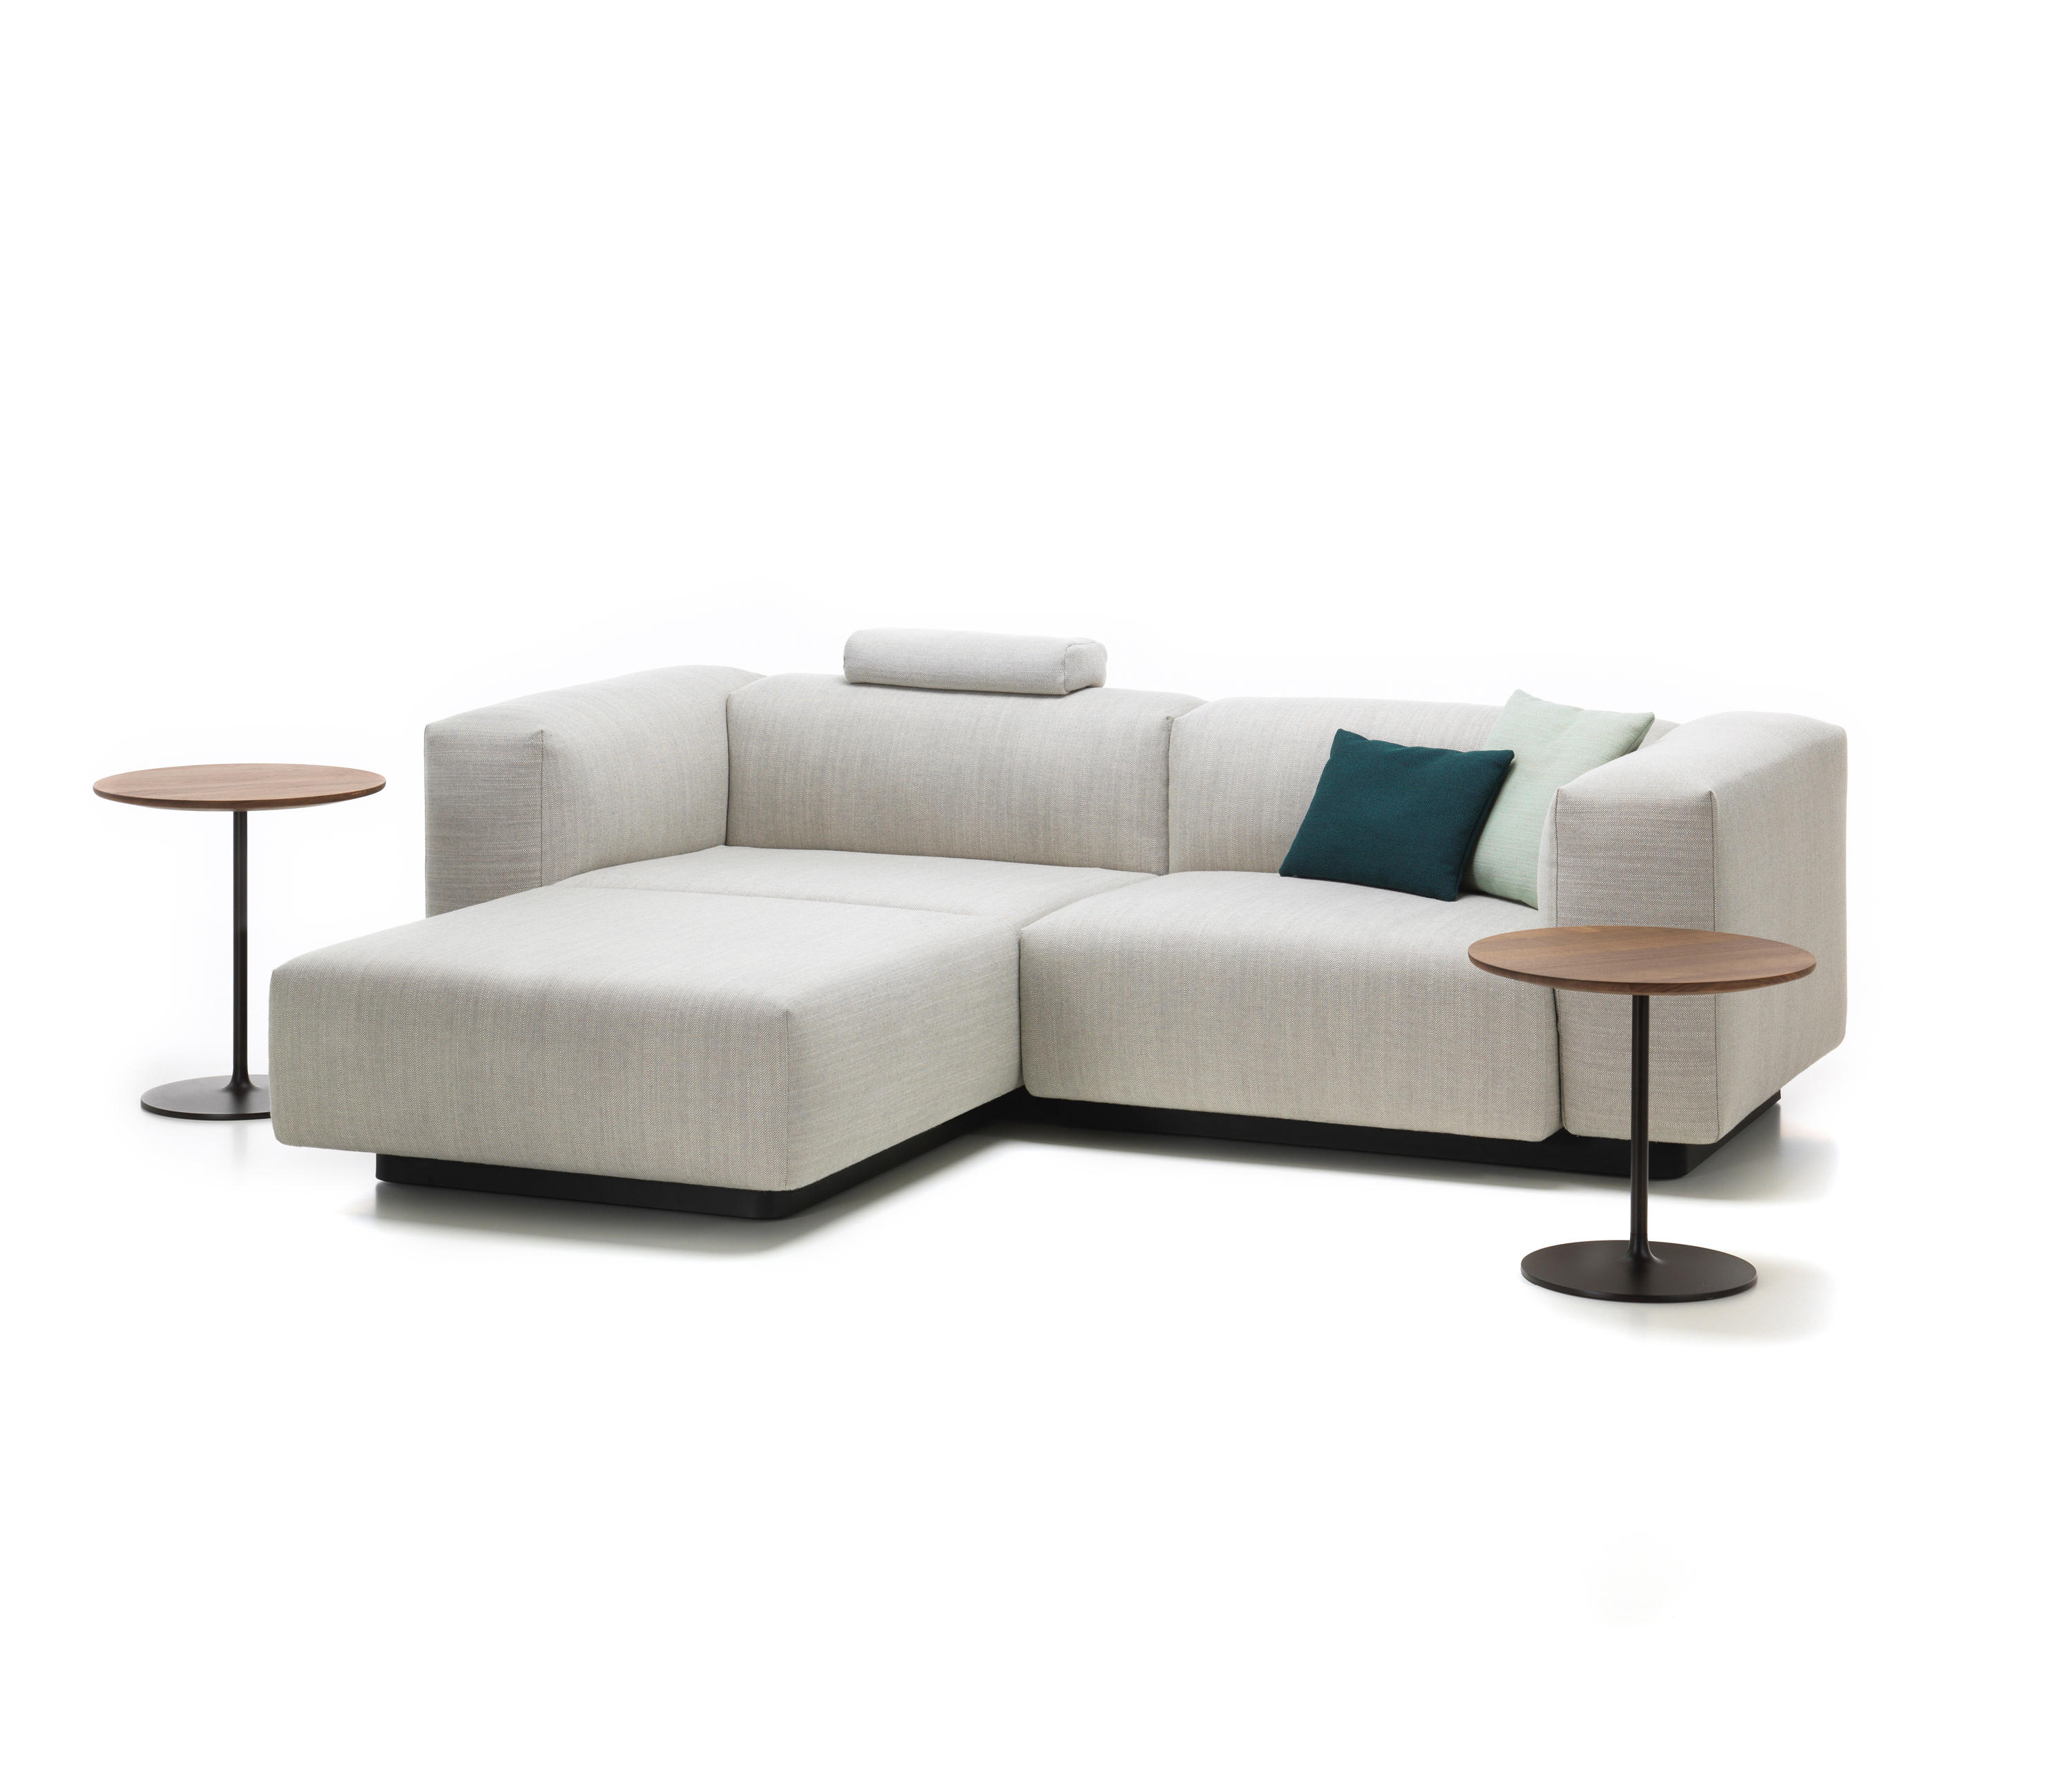 Sofa modular chaise longue sofa the honoroak - Sofa cama chaise longue ...